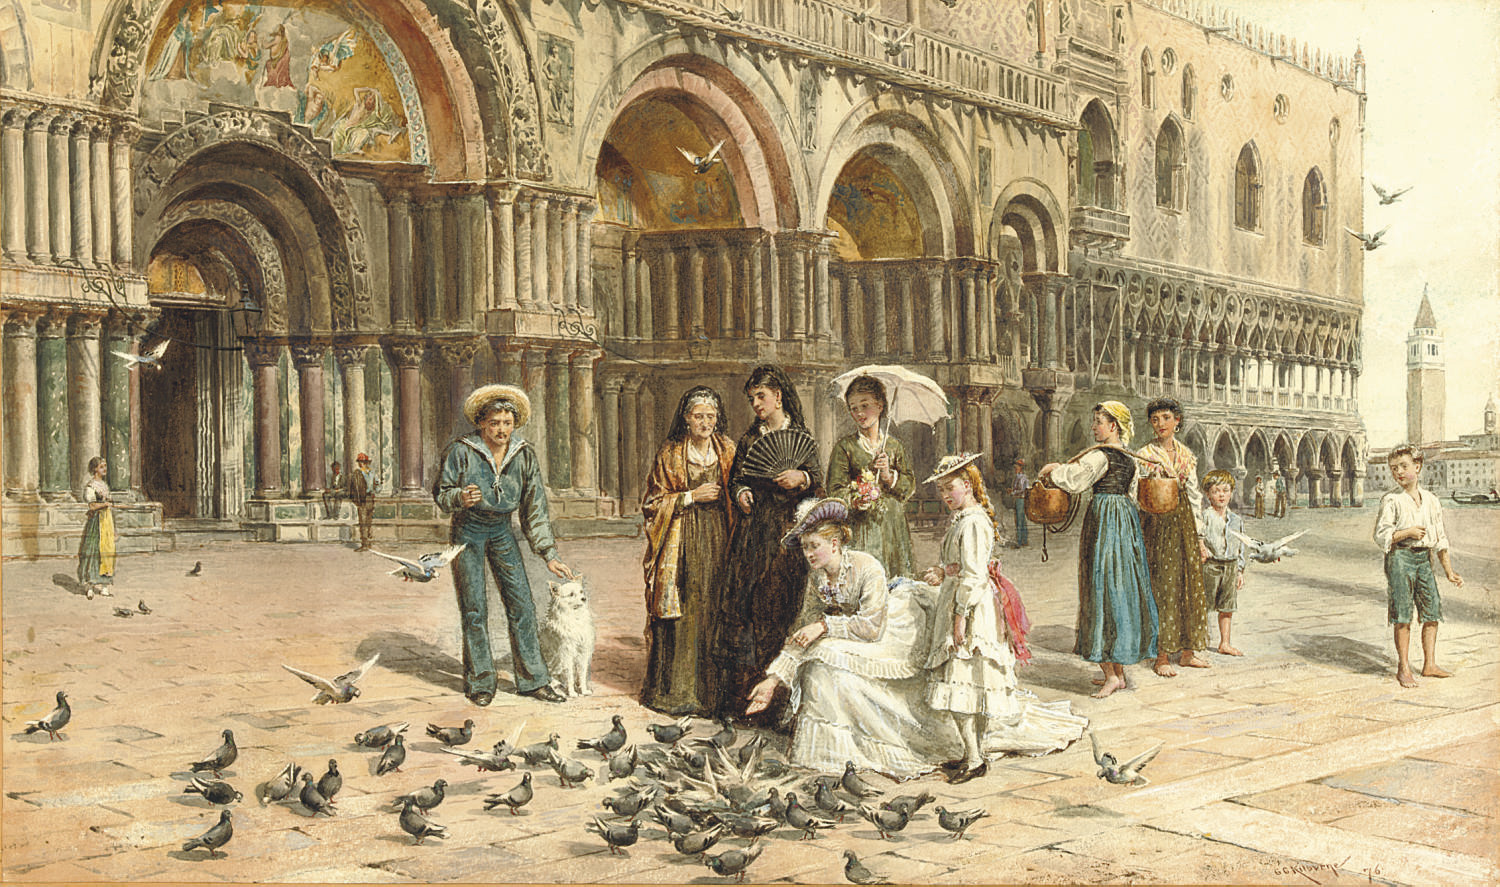 The pigeons of St Mark's, Venice, Italy